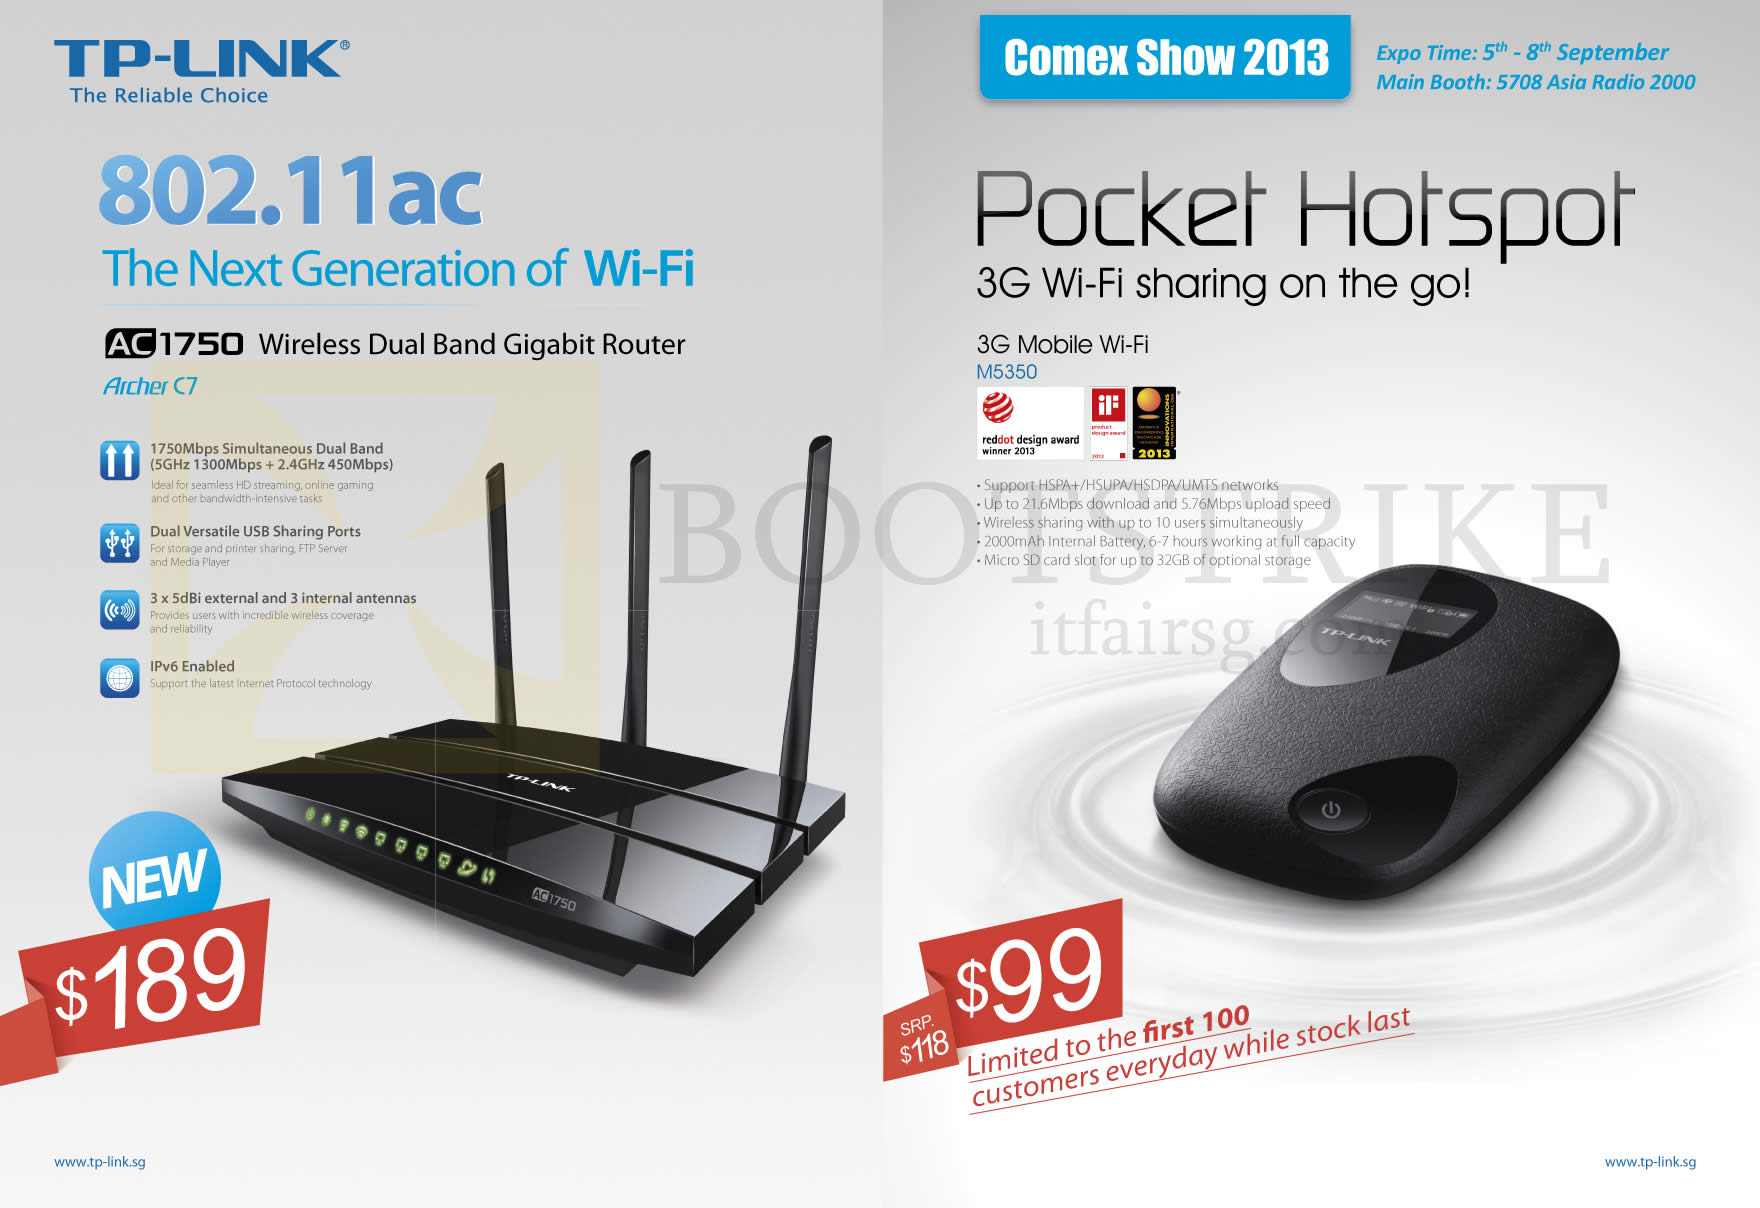 COMEX 2013 price list image brochure of Asia Radio TP-Link Networking AC1750 802.11ac Wireless Router, Pocket Hotspot M5350 3G Mobile Wifi Sharing